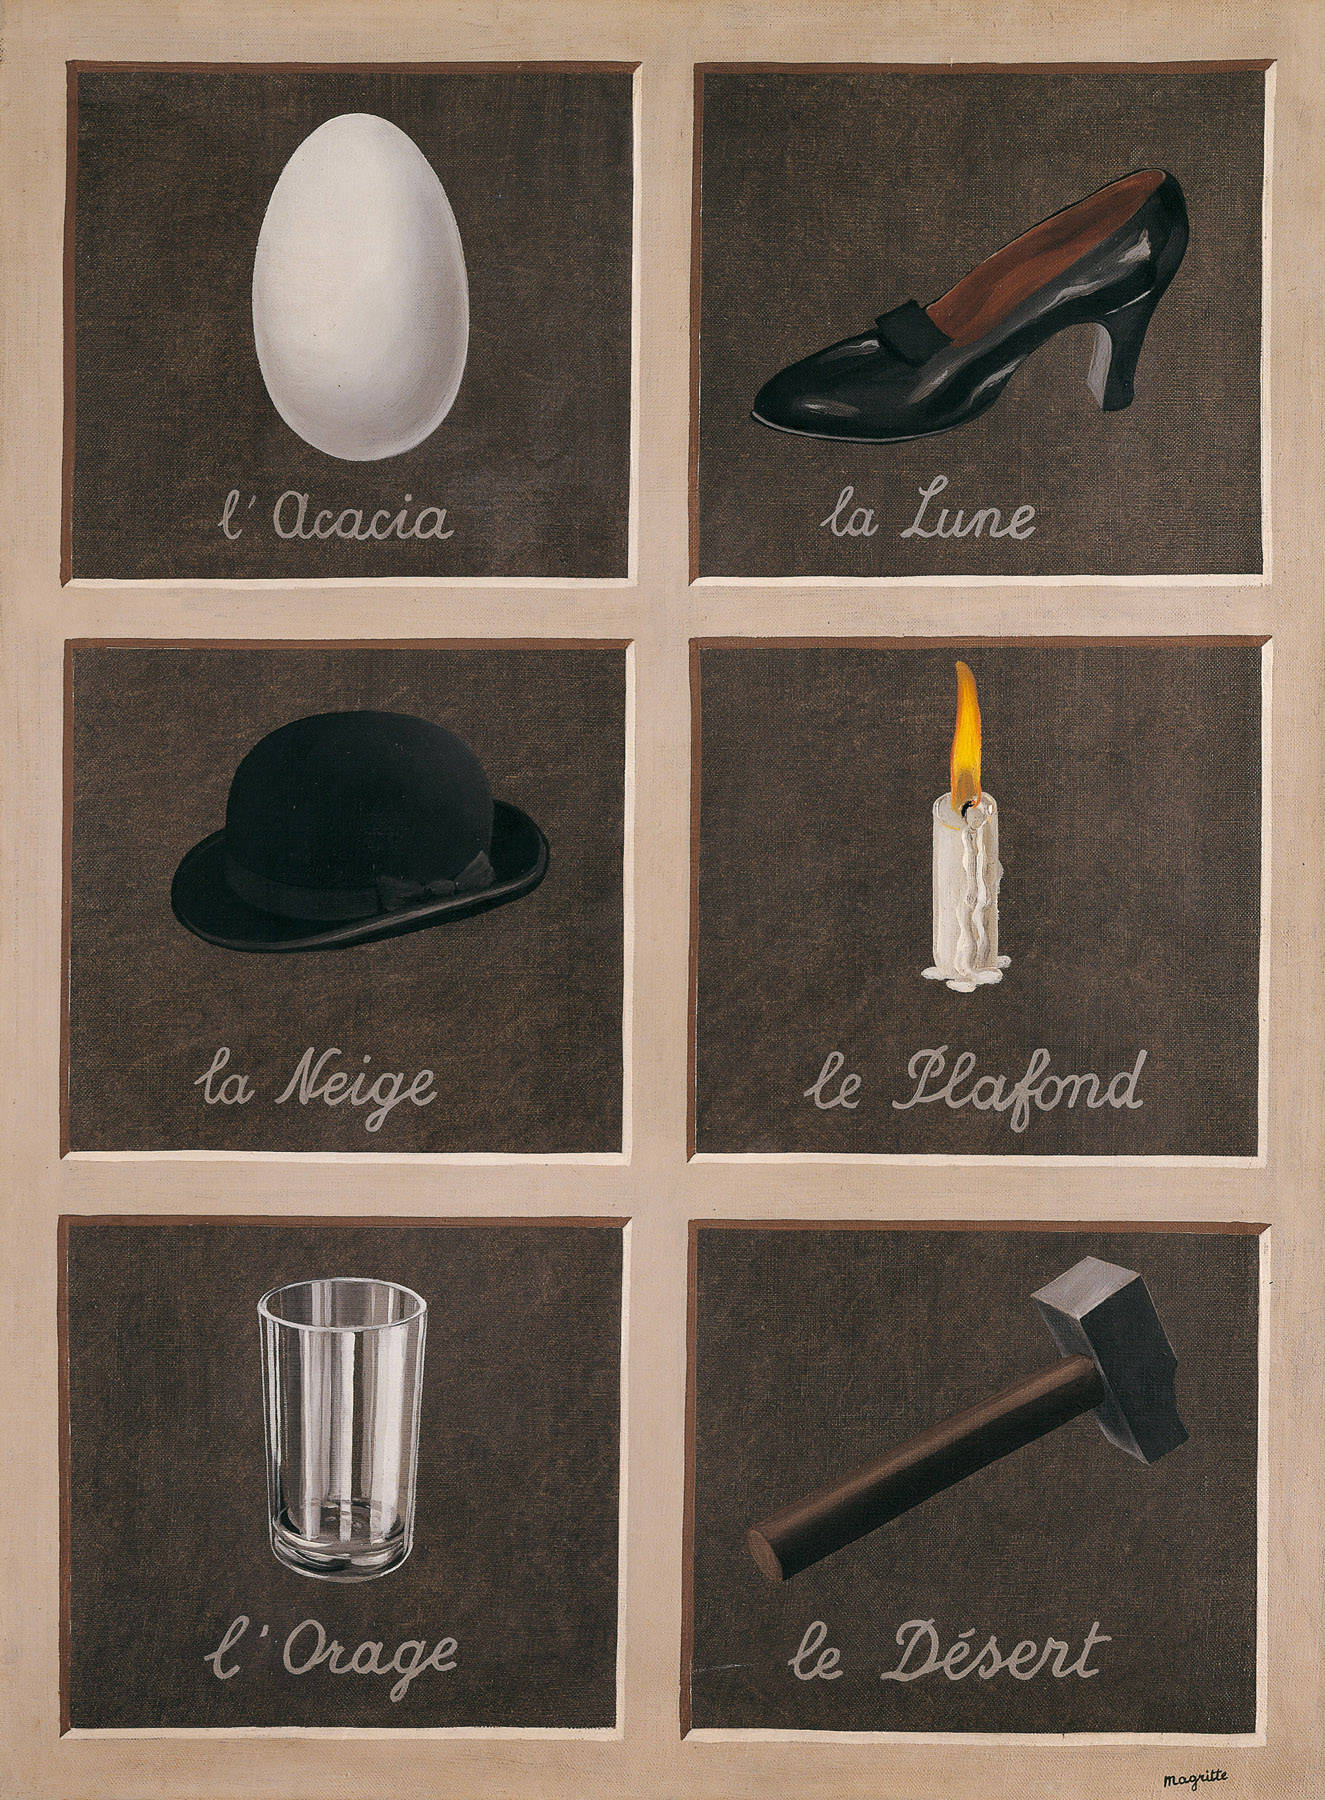 The key to dreams alexanderstorey for Rene magritte le faux miroir